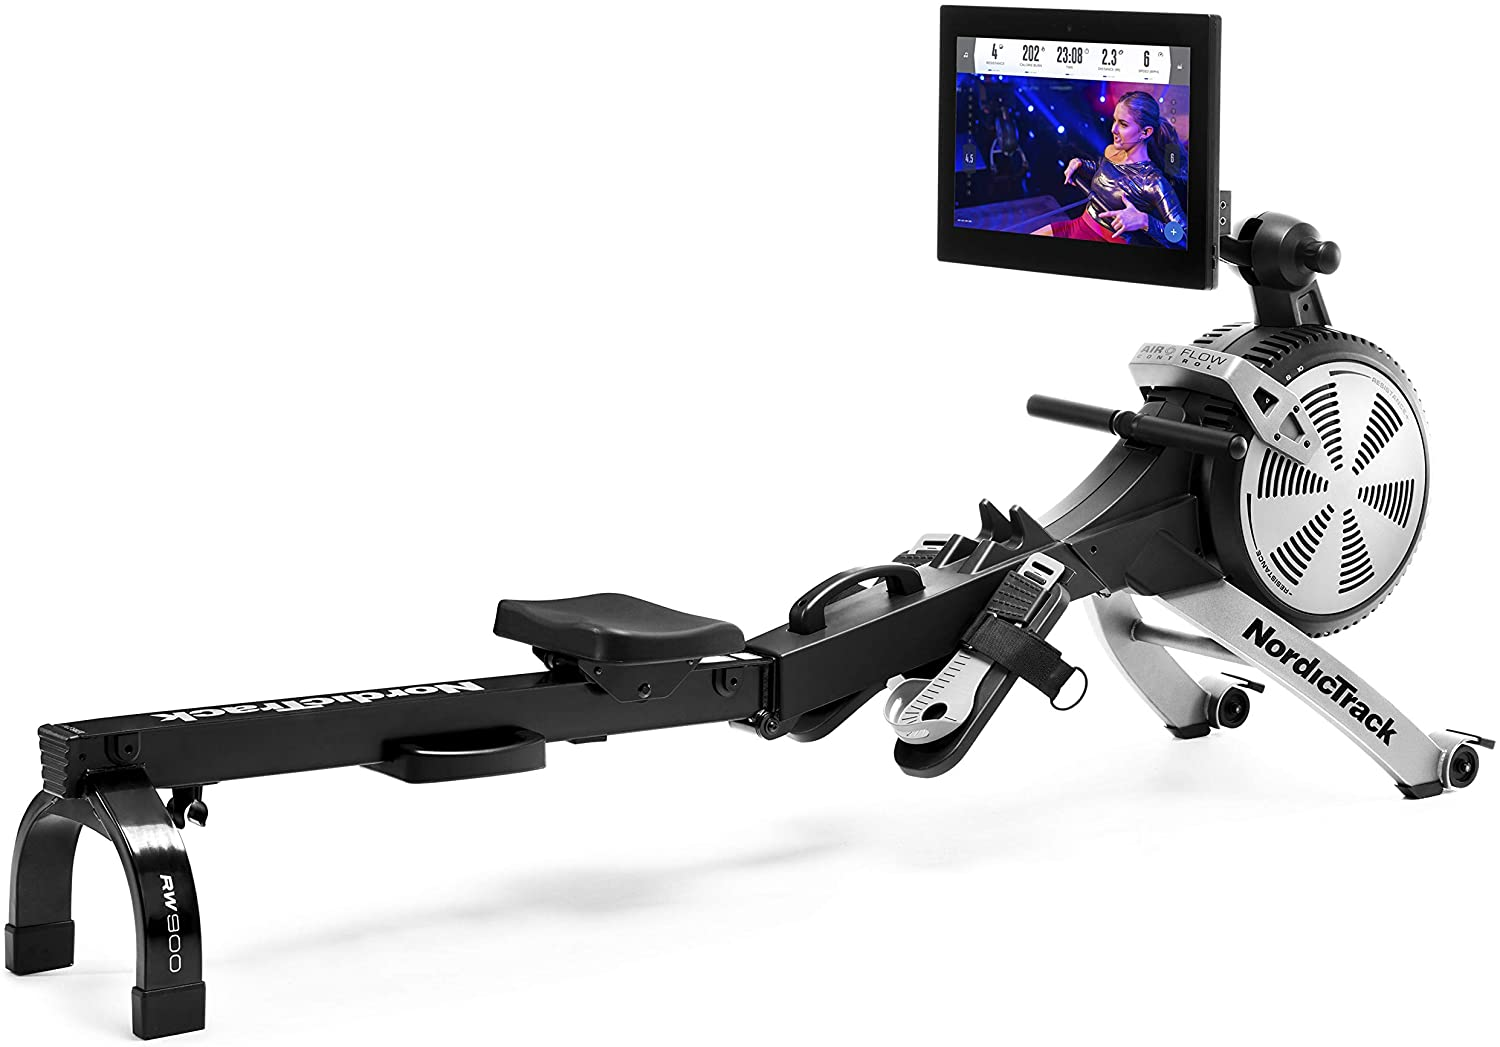 10 best rowing machines for whole body home exercise 2021 herstylecode 8 10 Best Rowing Machines for Whole Body Home Exercise 2021